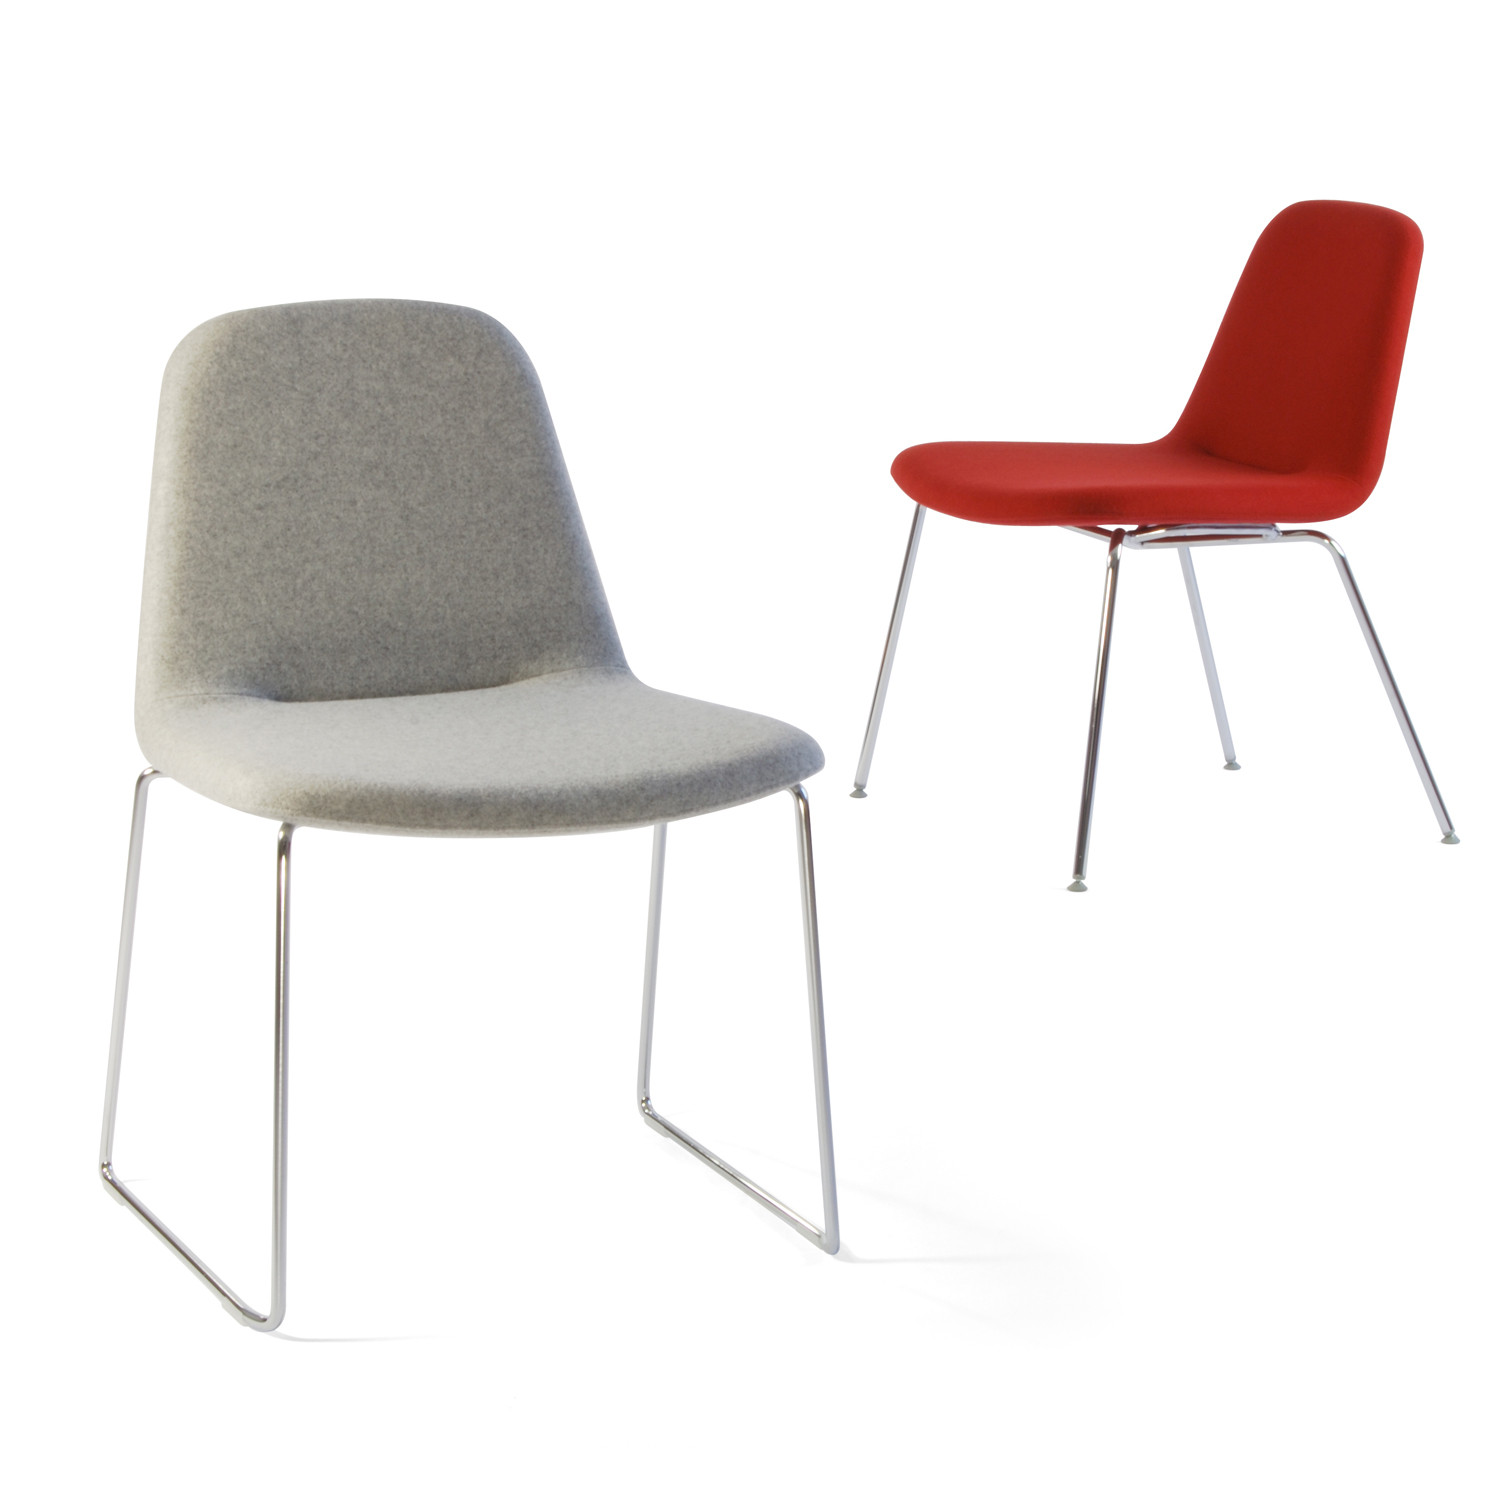 HM58a and HM58b Chairs